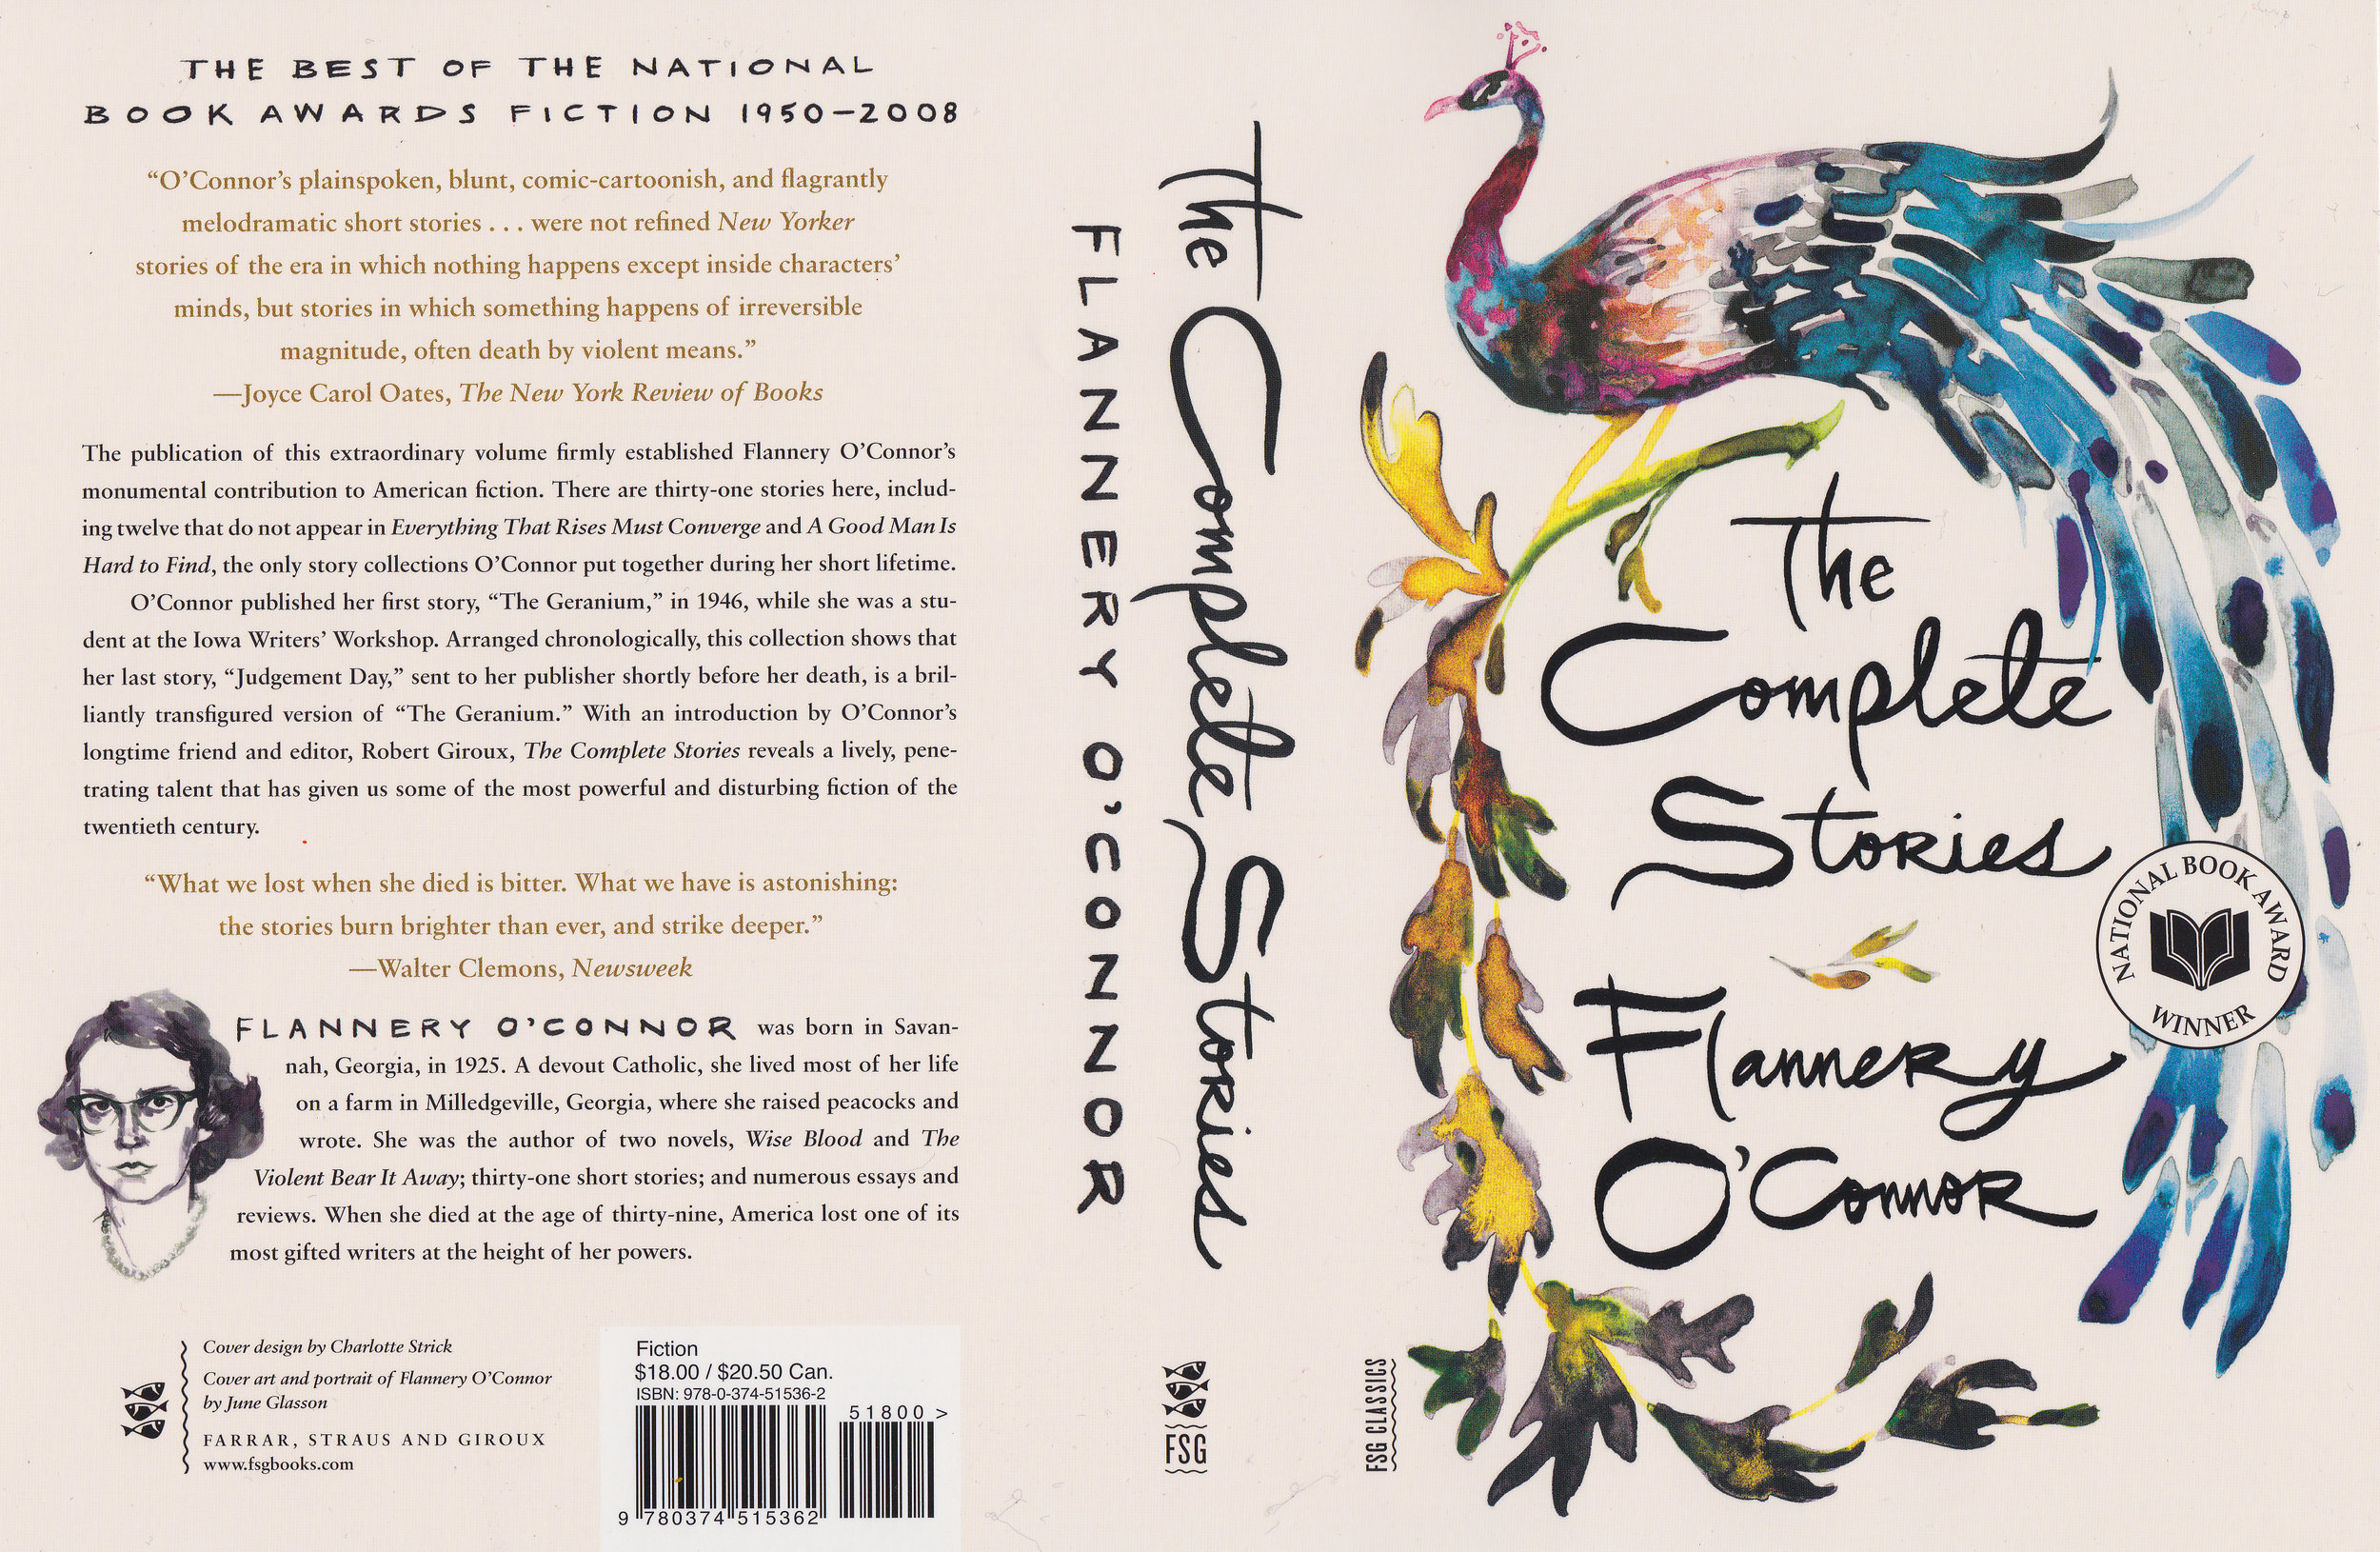 THE COMPLETE STORIES  BY FLANNERY O'CONNOR  FARRAR, STRAUS, AND GIROUX 2014 |DESIGN BY CHARLOTTE STRICK